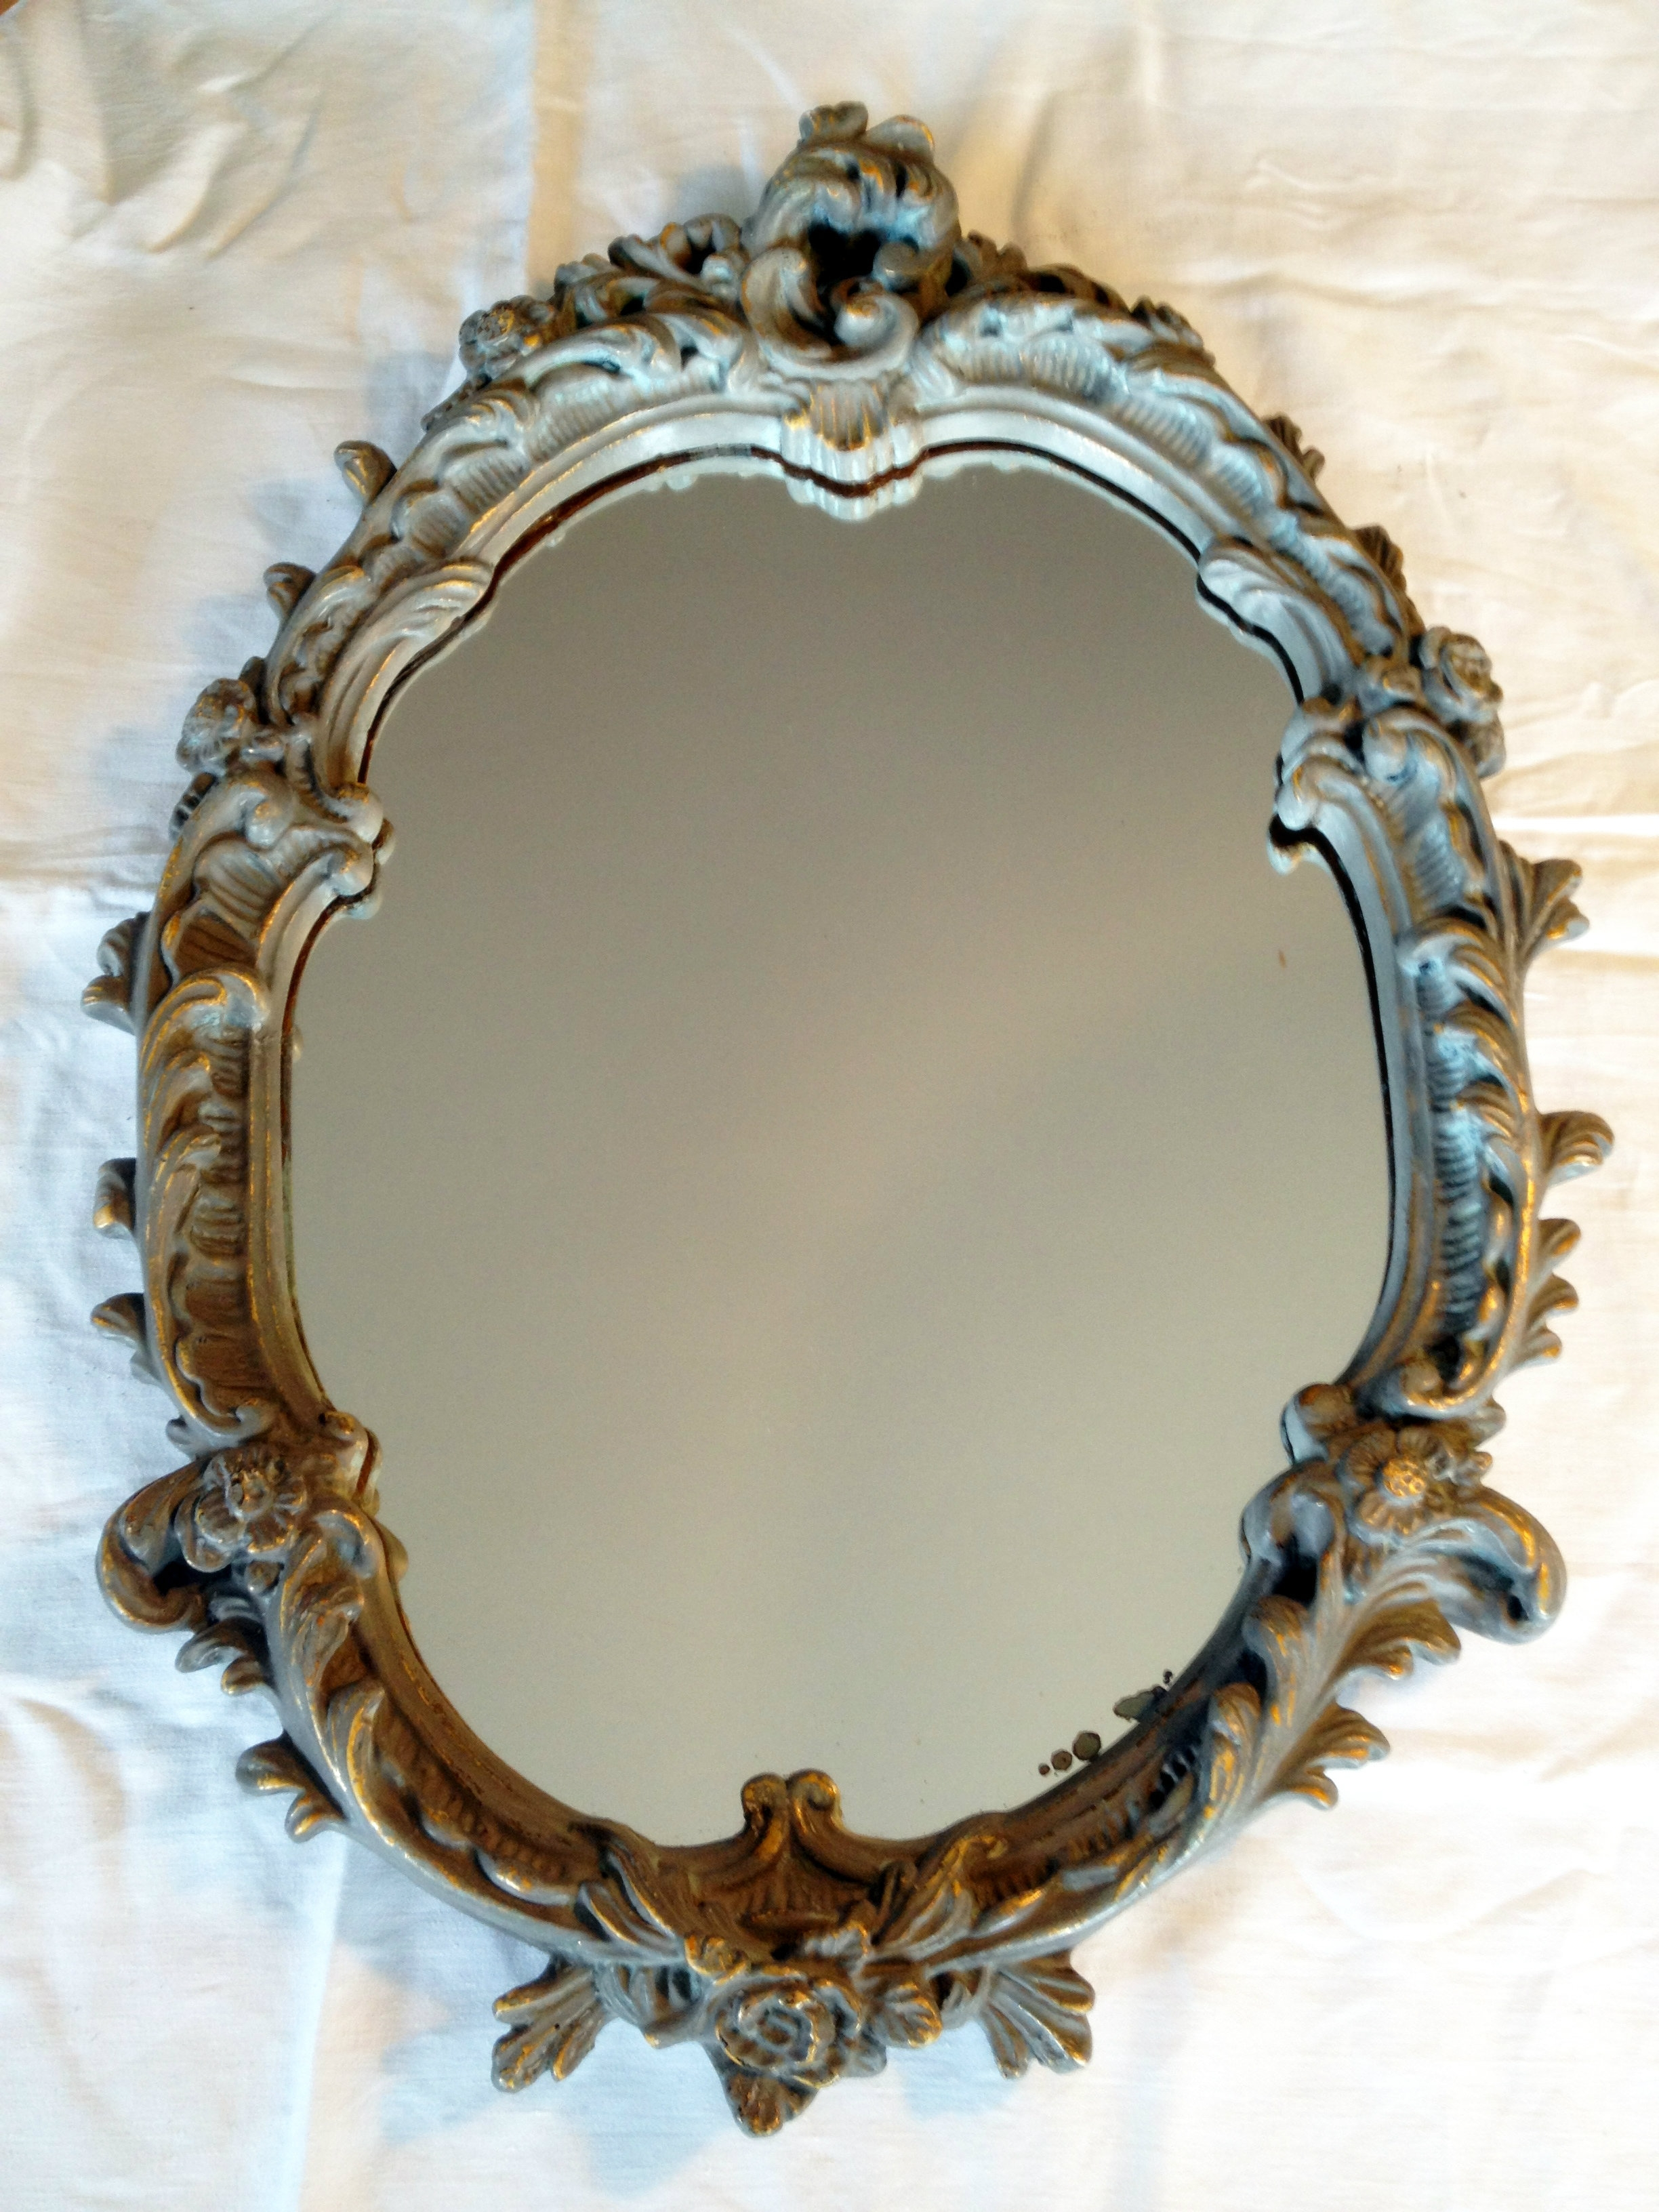 Antique Mirrors Treasurepalace Designs Ornate Vintage Mirror In Vintage Mirrors (Image 2 of 15)